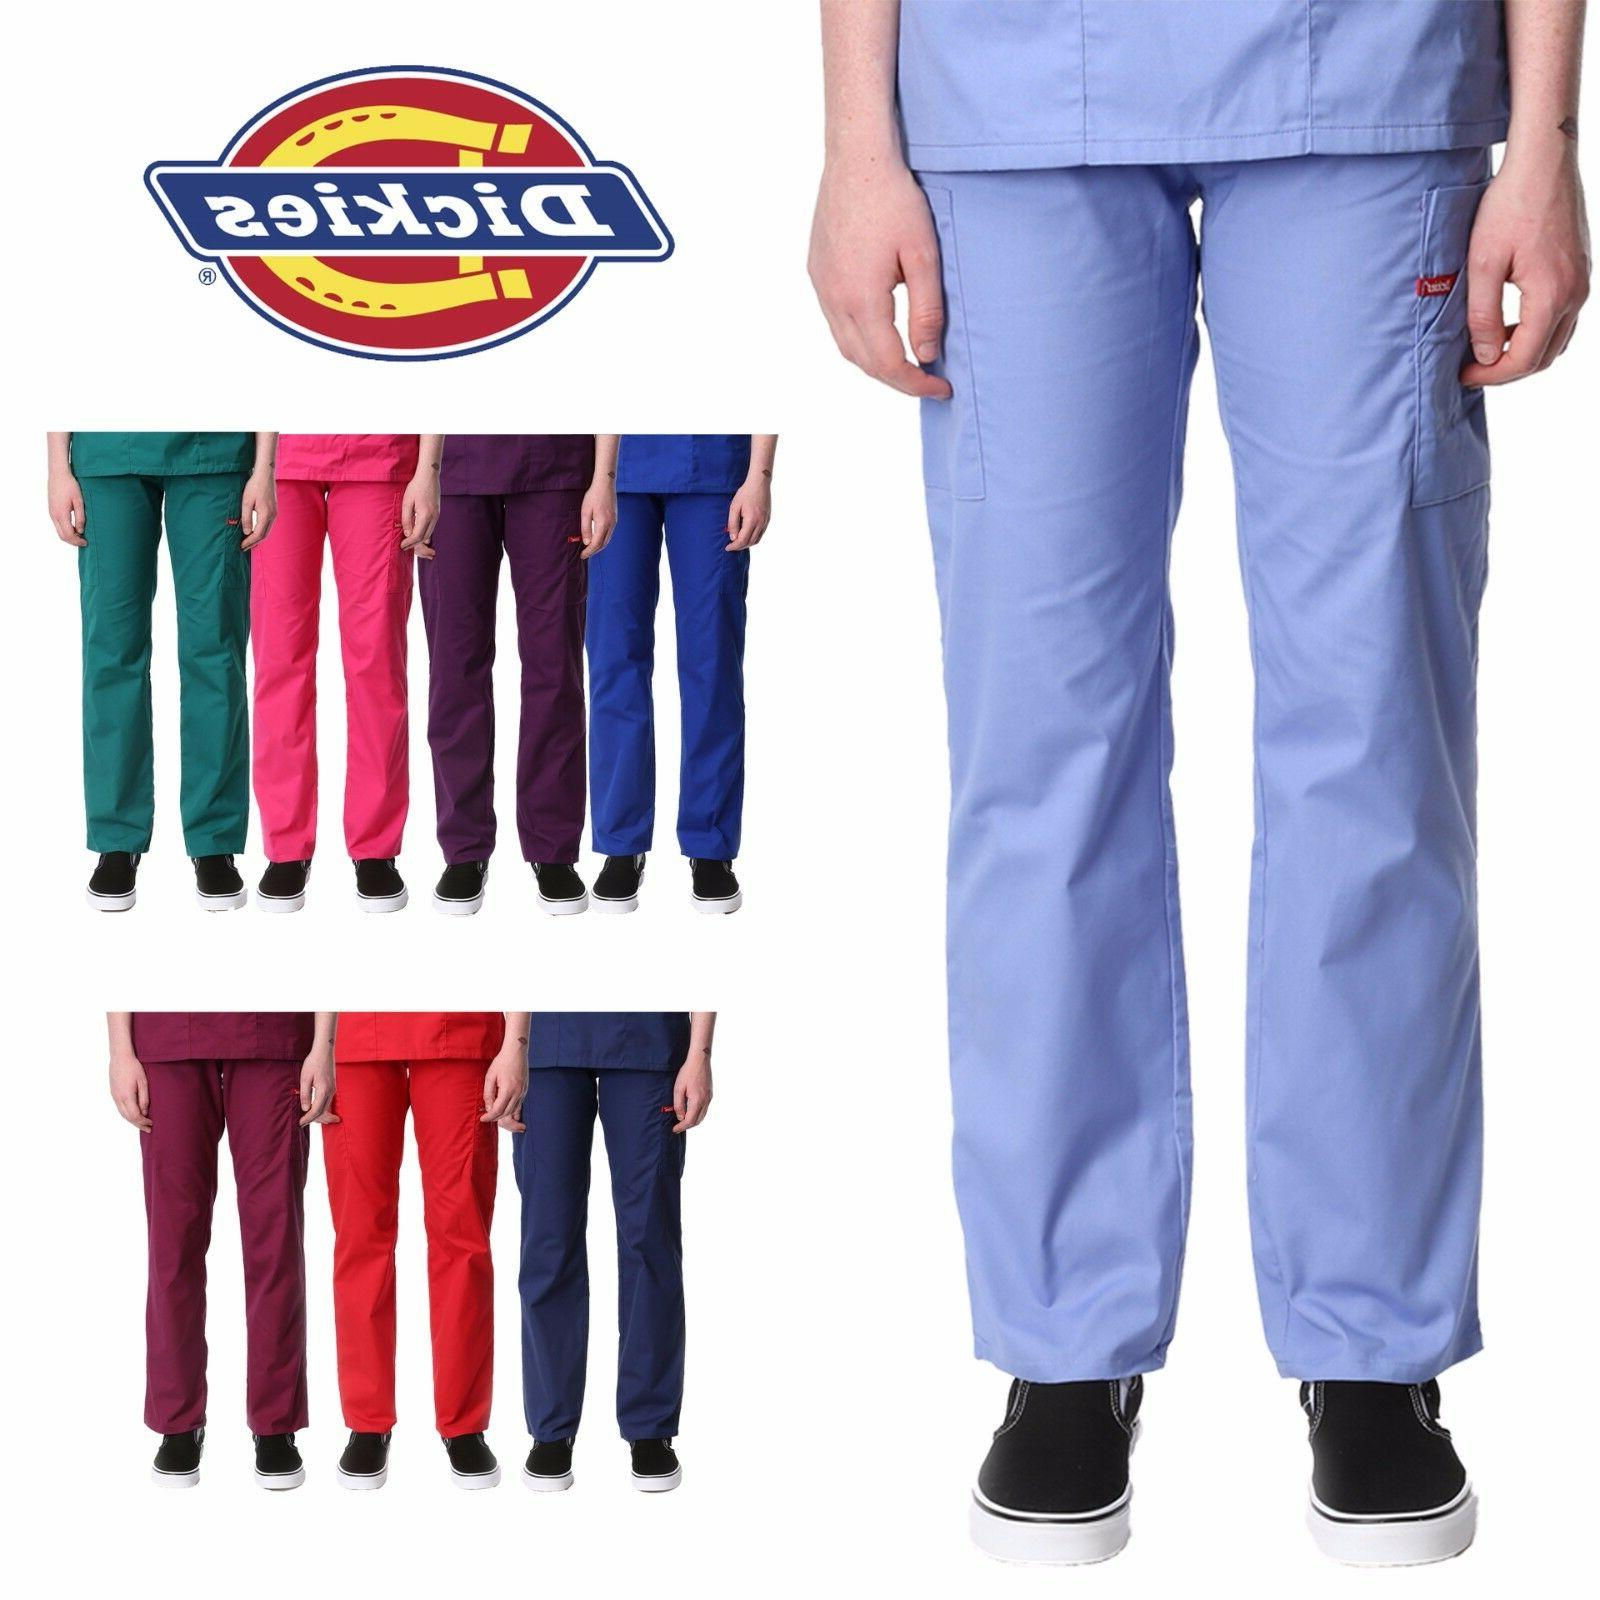 Dickies Pull-on Cargo Scrub Pants Women's Medical Uniform Bo